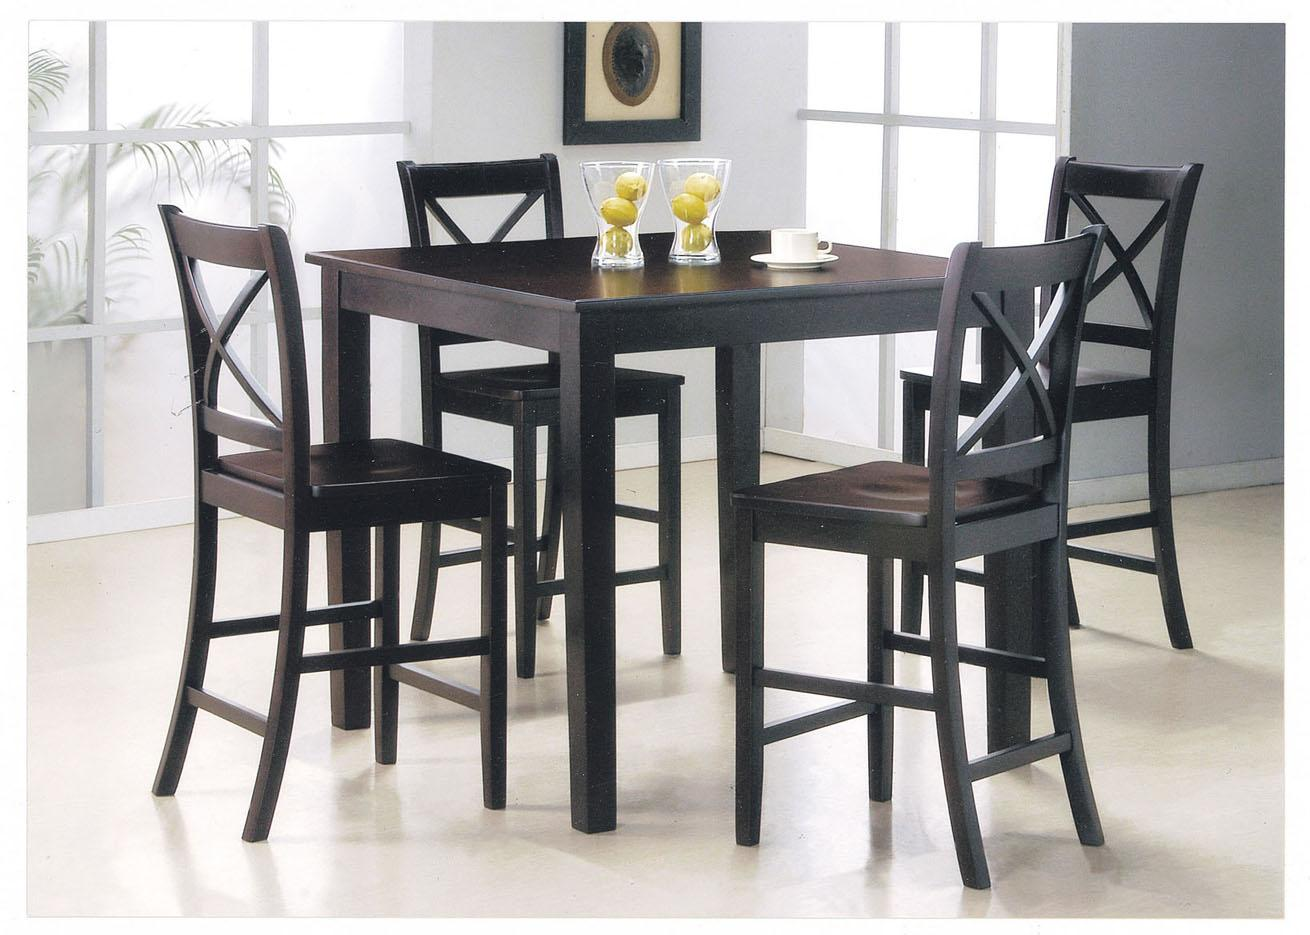 Acme Furniture Martha 5-Piece Counter Height Dining Set - Item Number: 07550